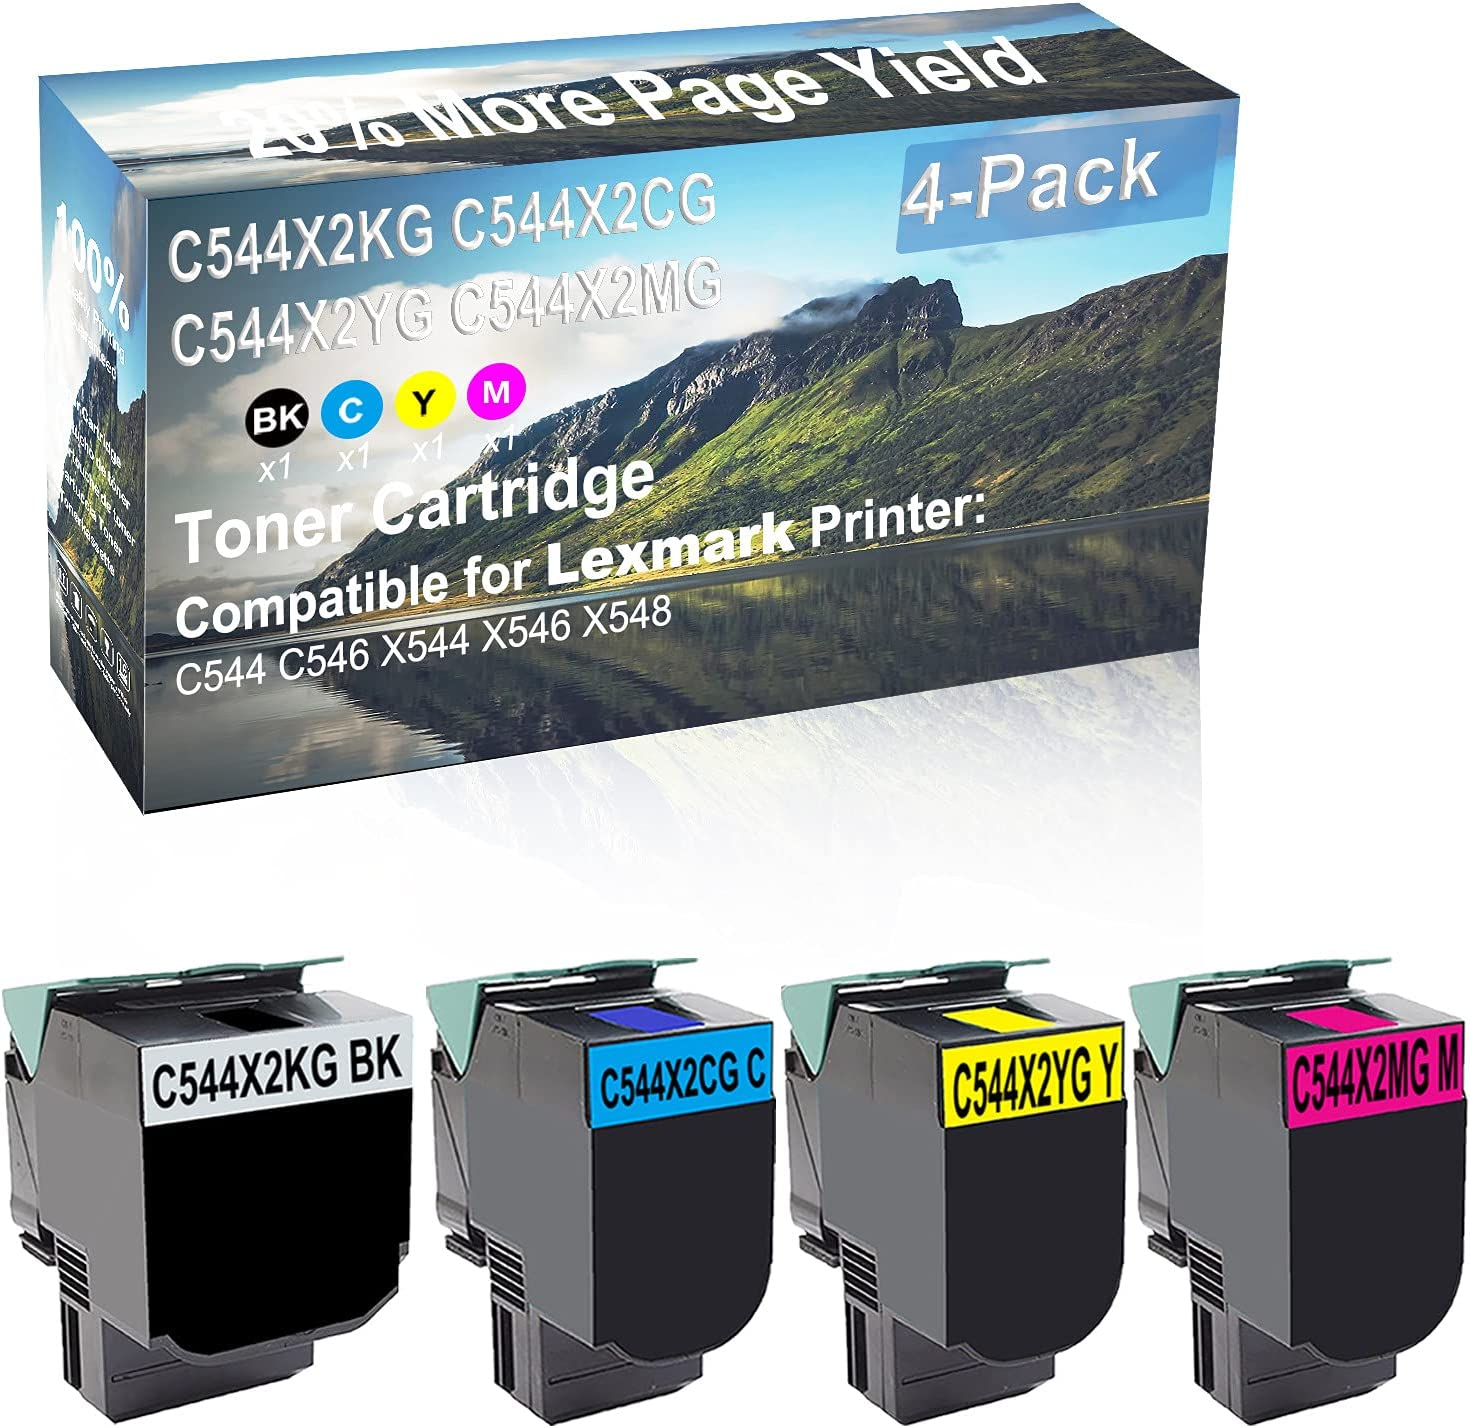 4-Pack (BK+C+Y+M) Compatible C544 C546 X544 X546 X548 Printer Toner Cartridge High Capacity Replacement for Lexmark C544X2KG+ C544X2CG+ C544X2YG+ C540H2MG Toner Cartridge